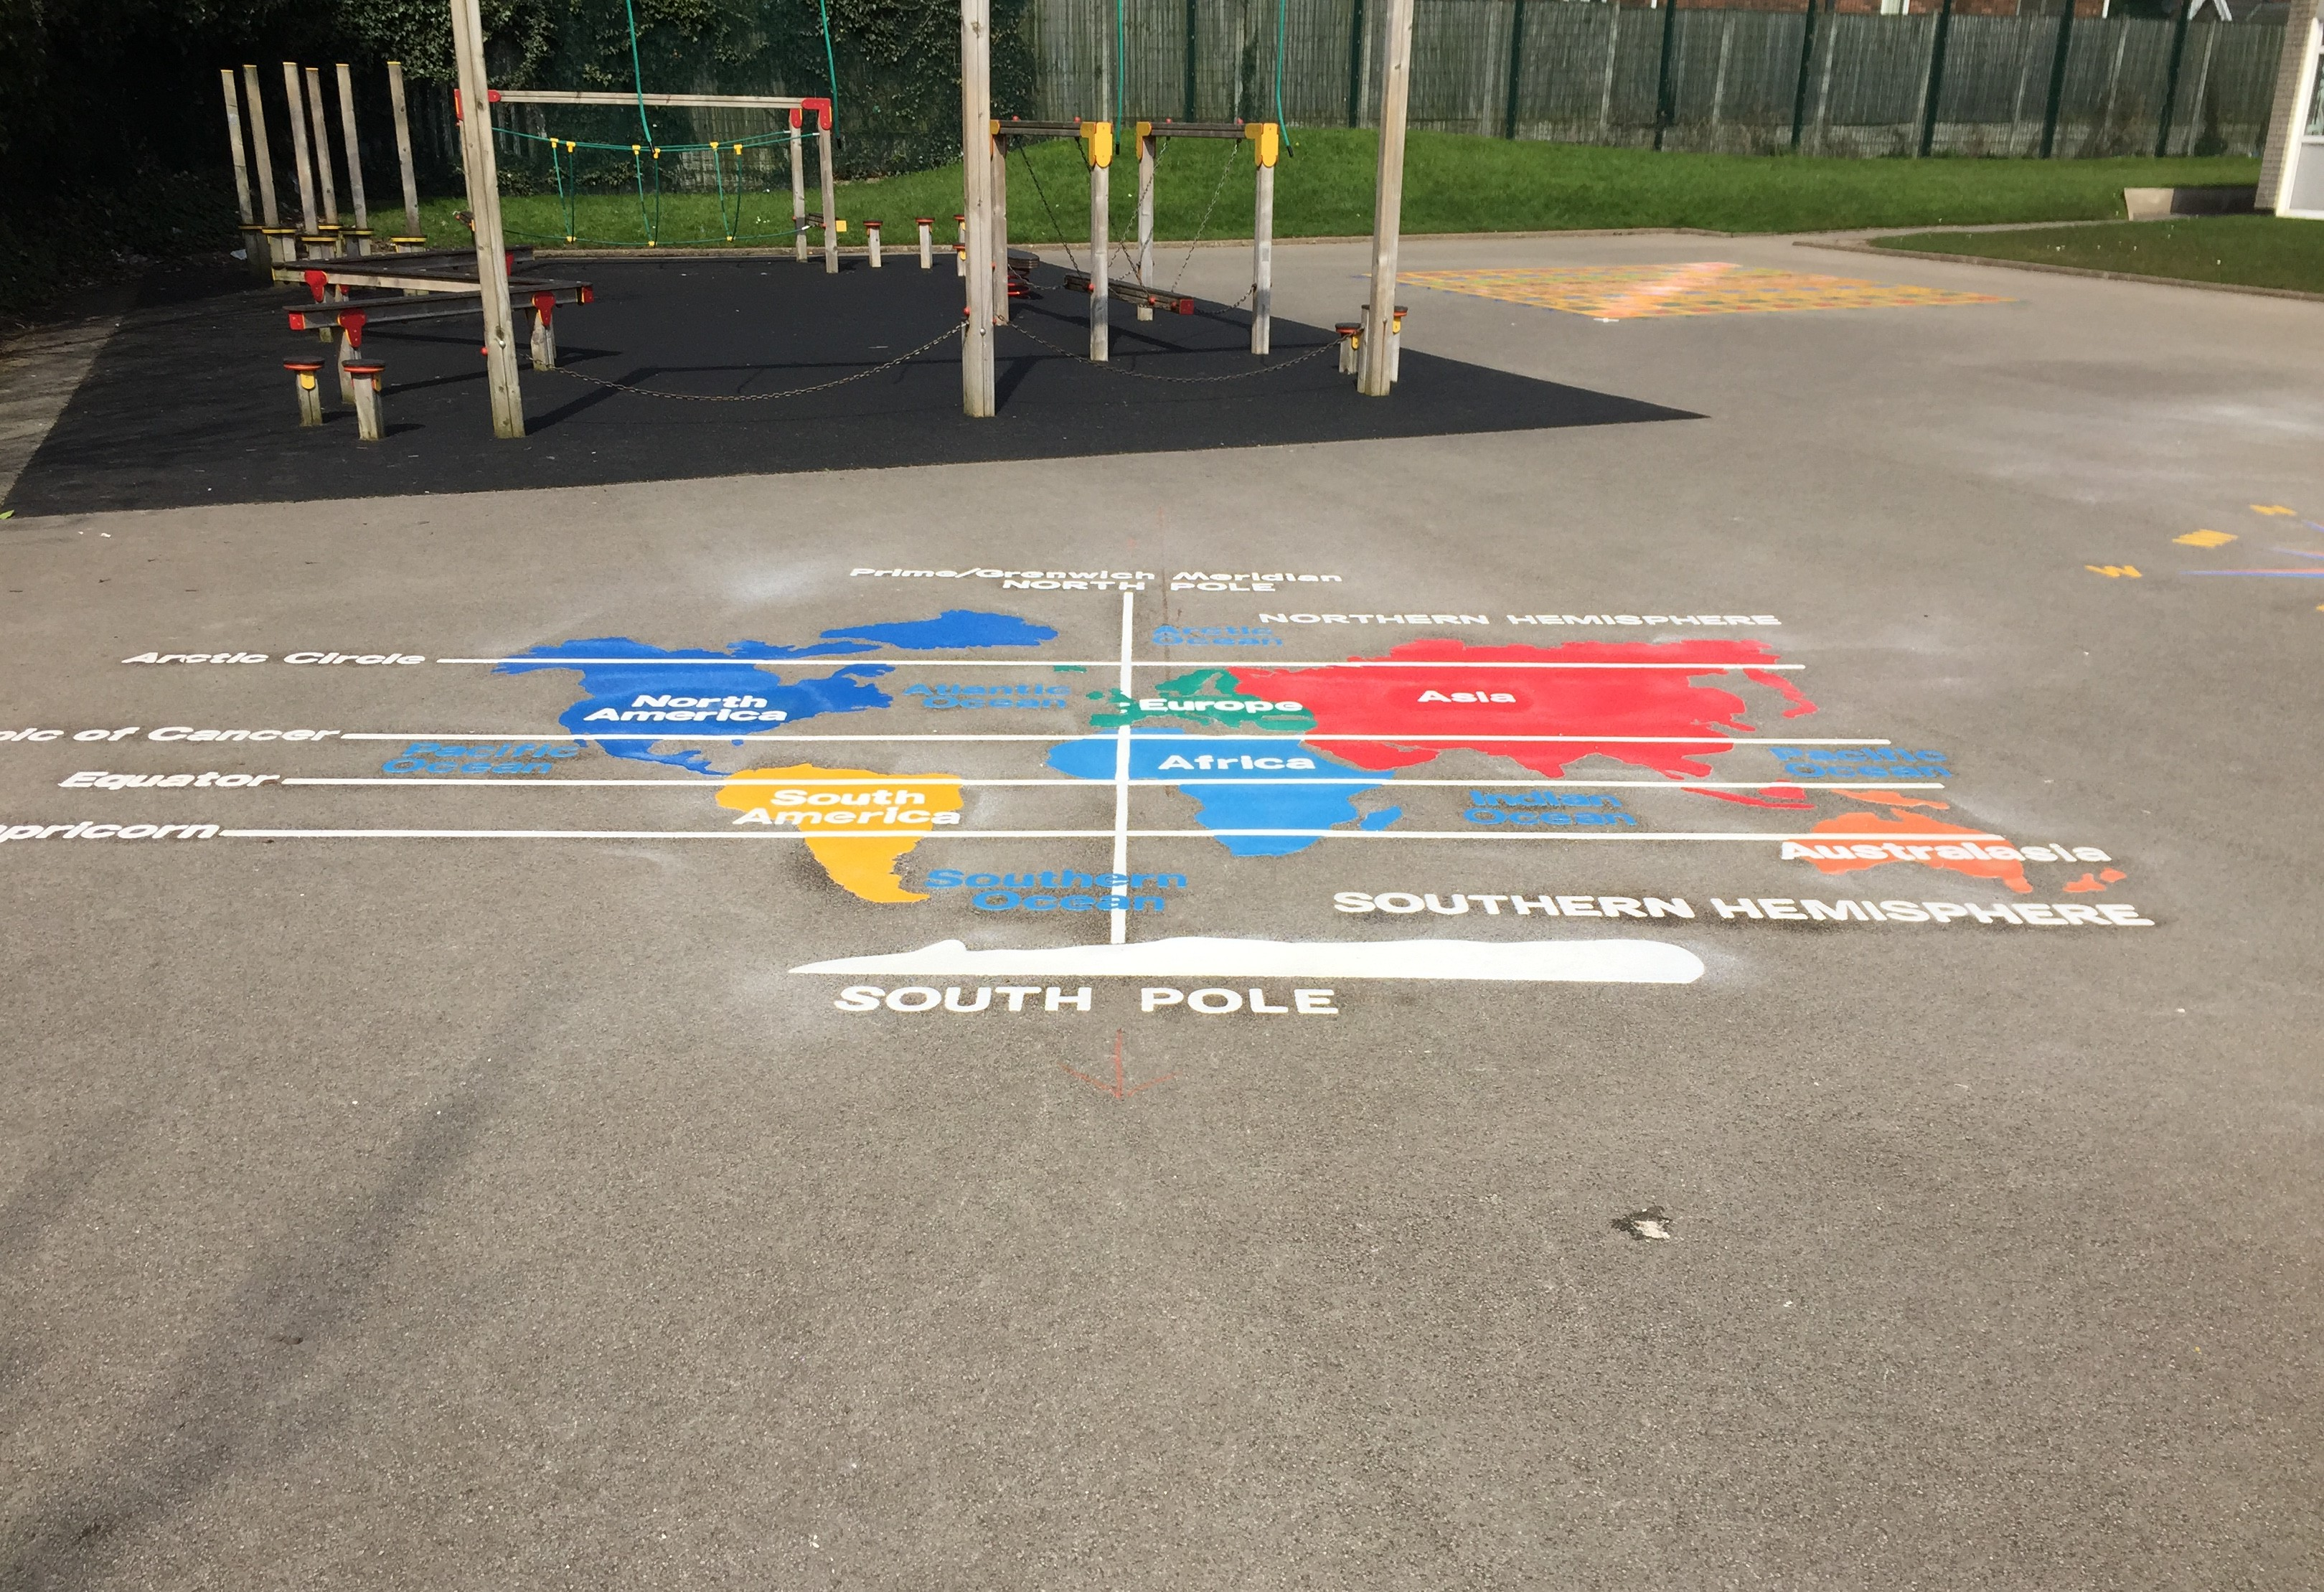 Playground markings new geography curriculum first4playgrounds key stage 2 world map gumiabroncs Choice Image